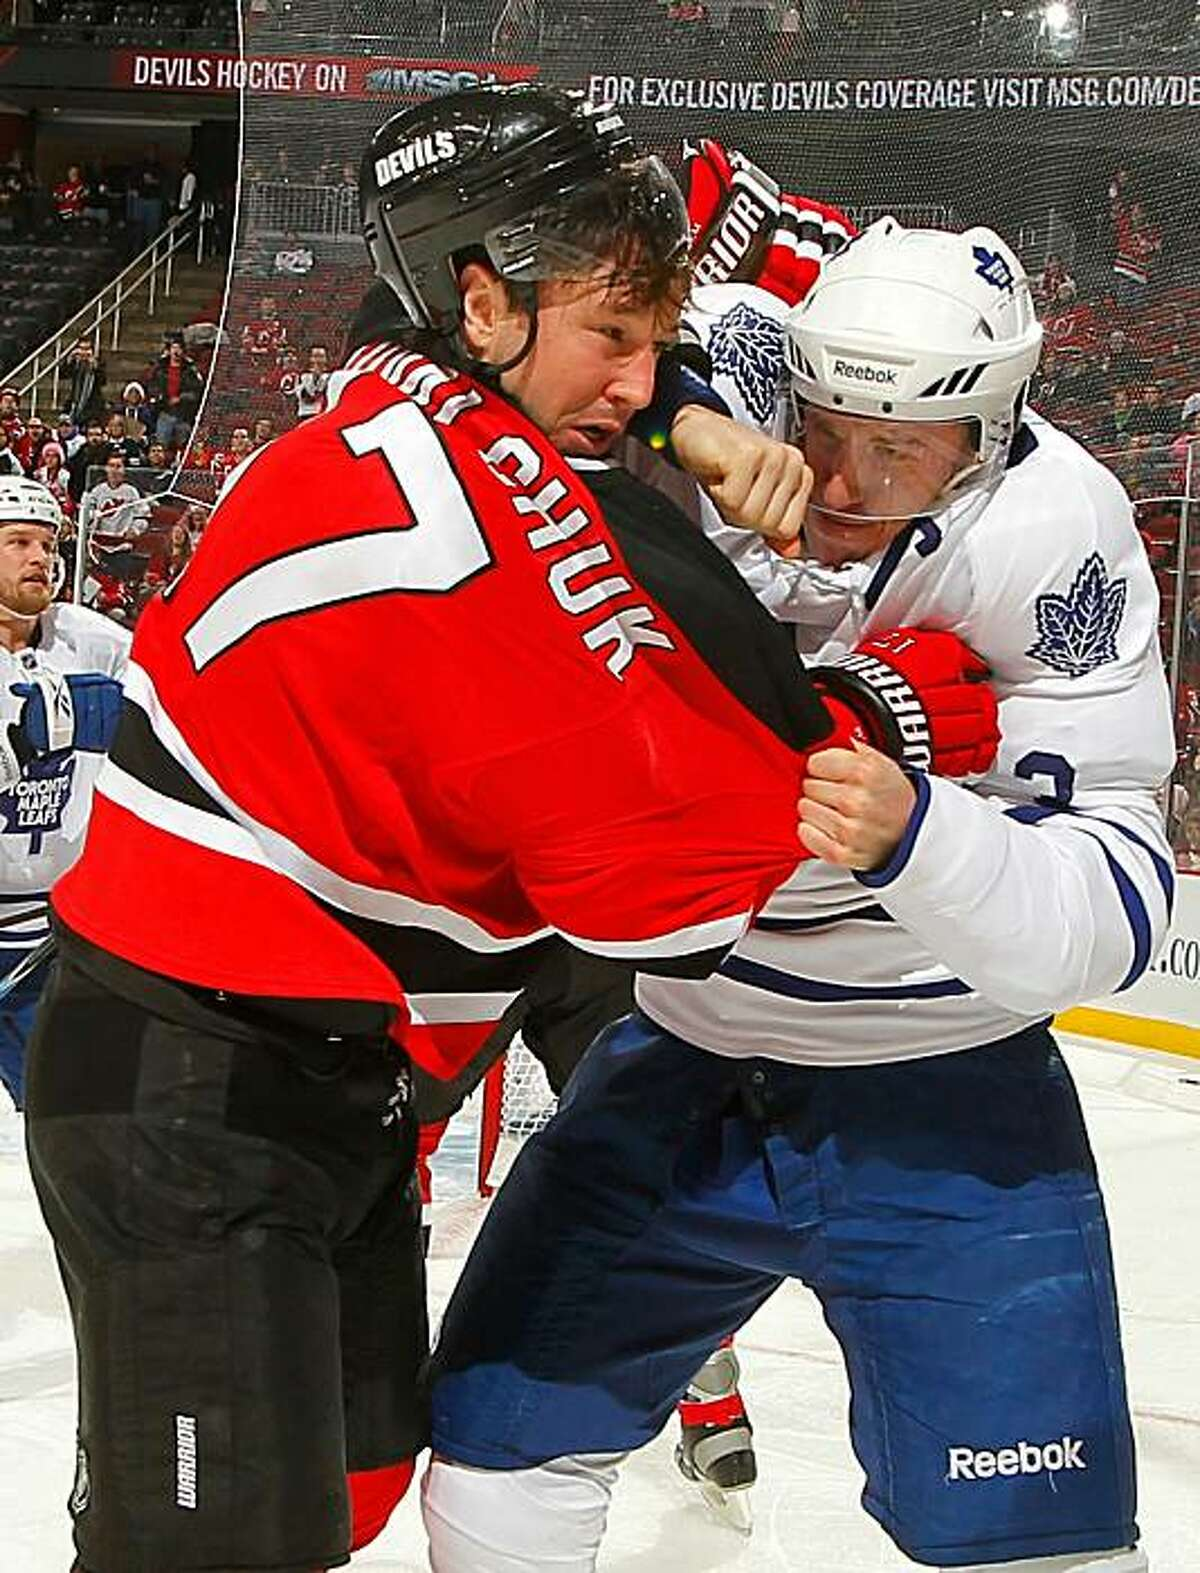 NEWARK, NJ - DECEMBER 26: Dion Phaneuf #3 of the Toronto Maple Leafs fights with Ilya Kovalchuk #17 of the New Jersey Devils in the second period of an NHL hockey game at the Prudential Center on December 26, 2010 in Newark, New Jersey.